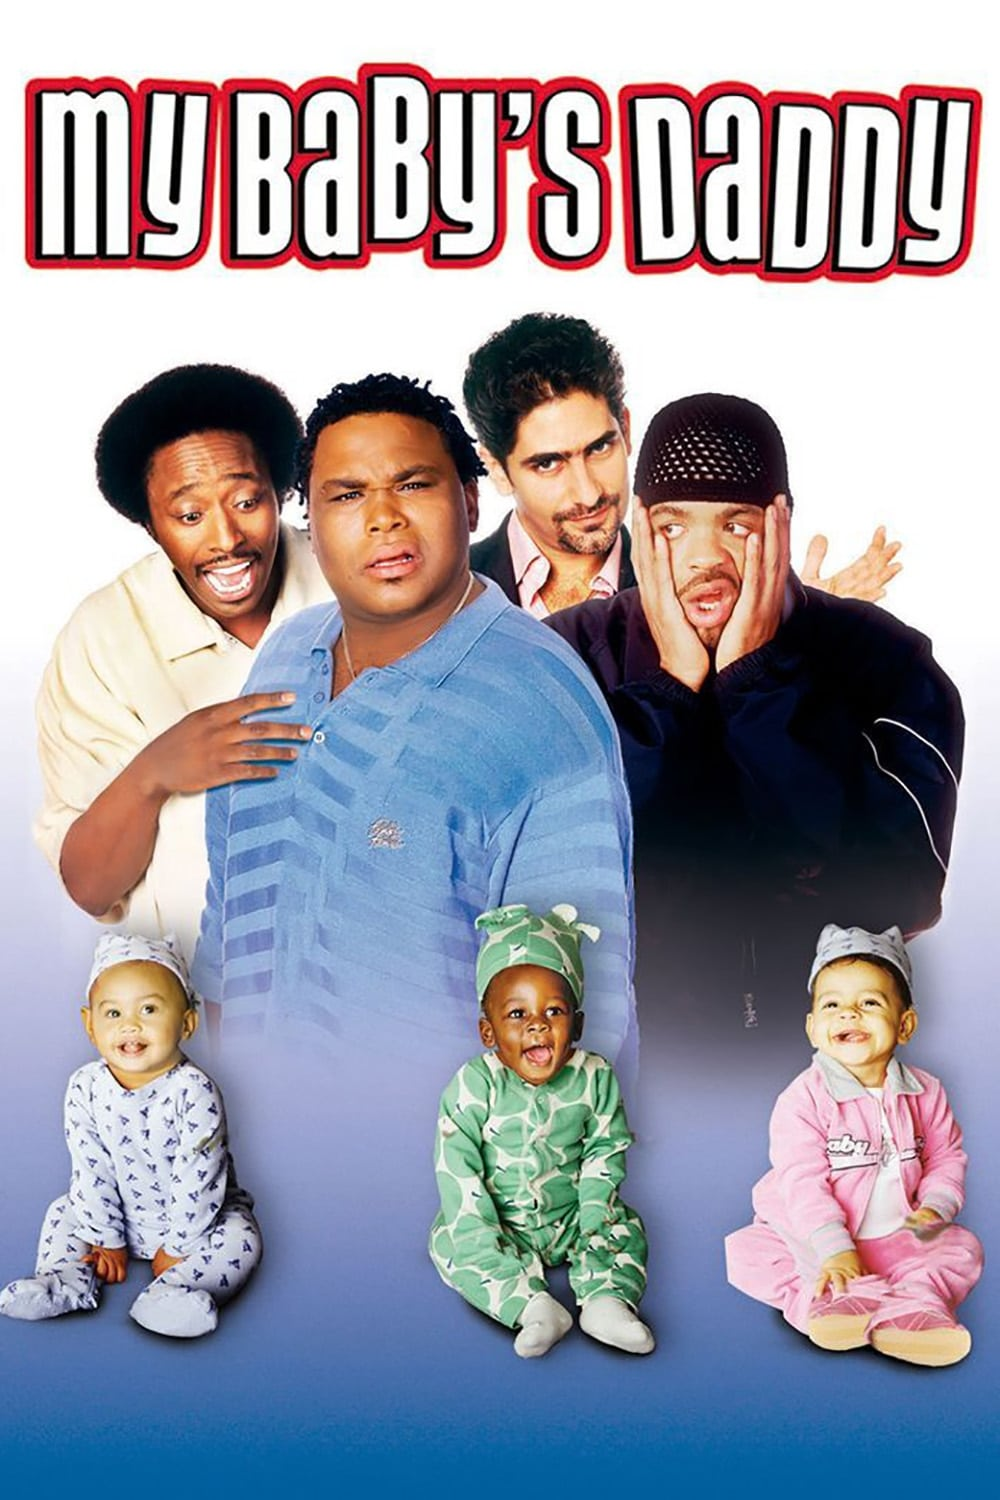 My Baby's Daddy (2004)